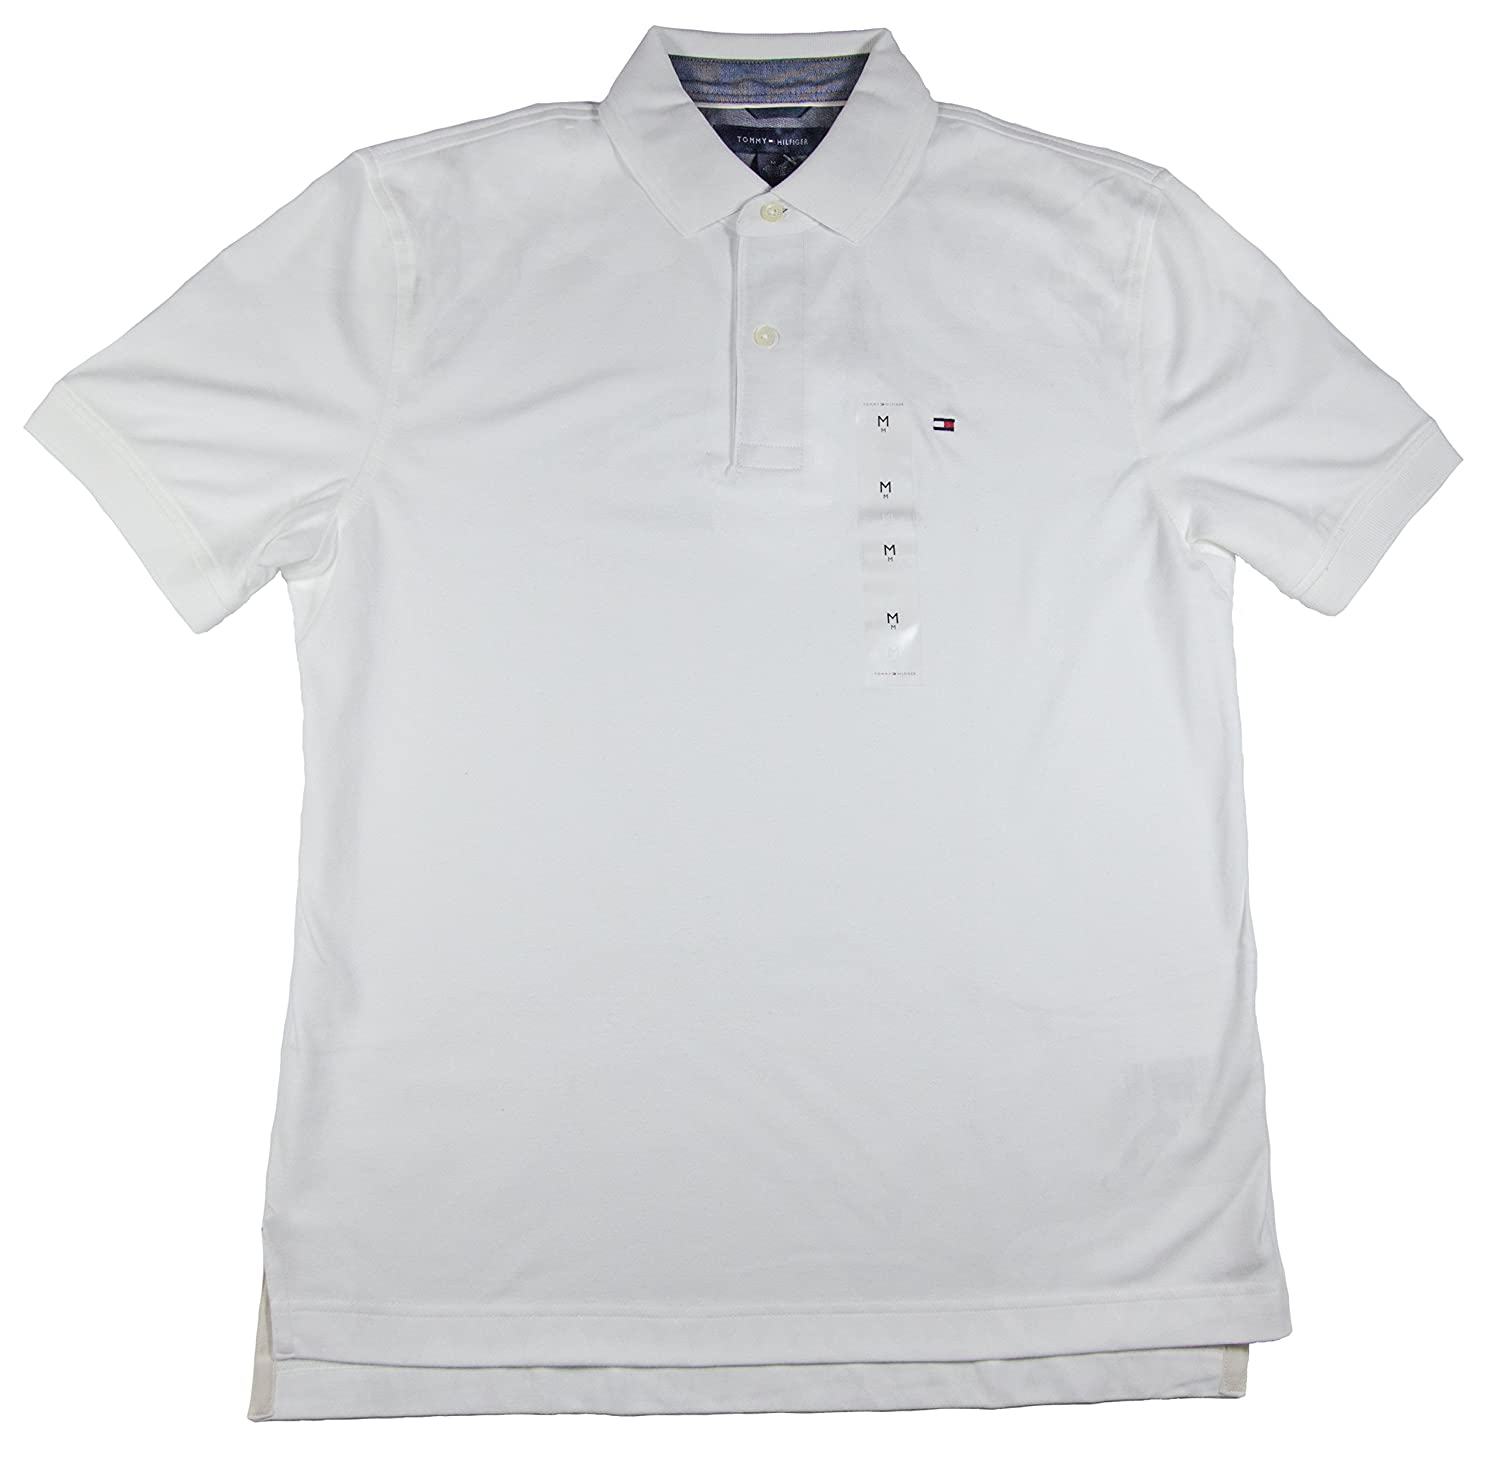 c1d524ac Tommy Hilfiger Mens Interlock Polo, White, X-Large at Amazon Men's Clothing  store: